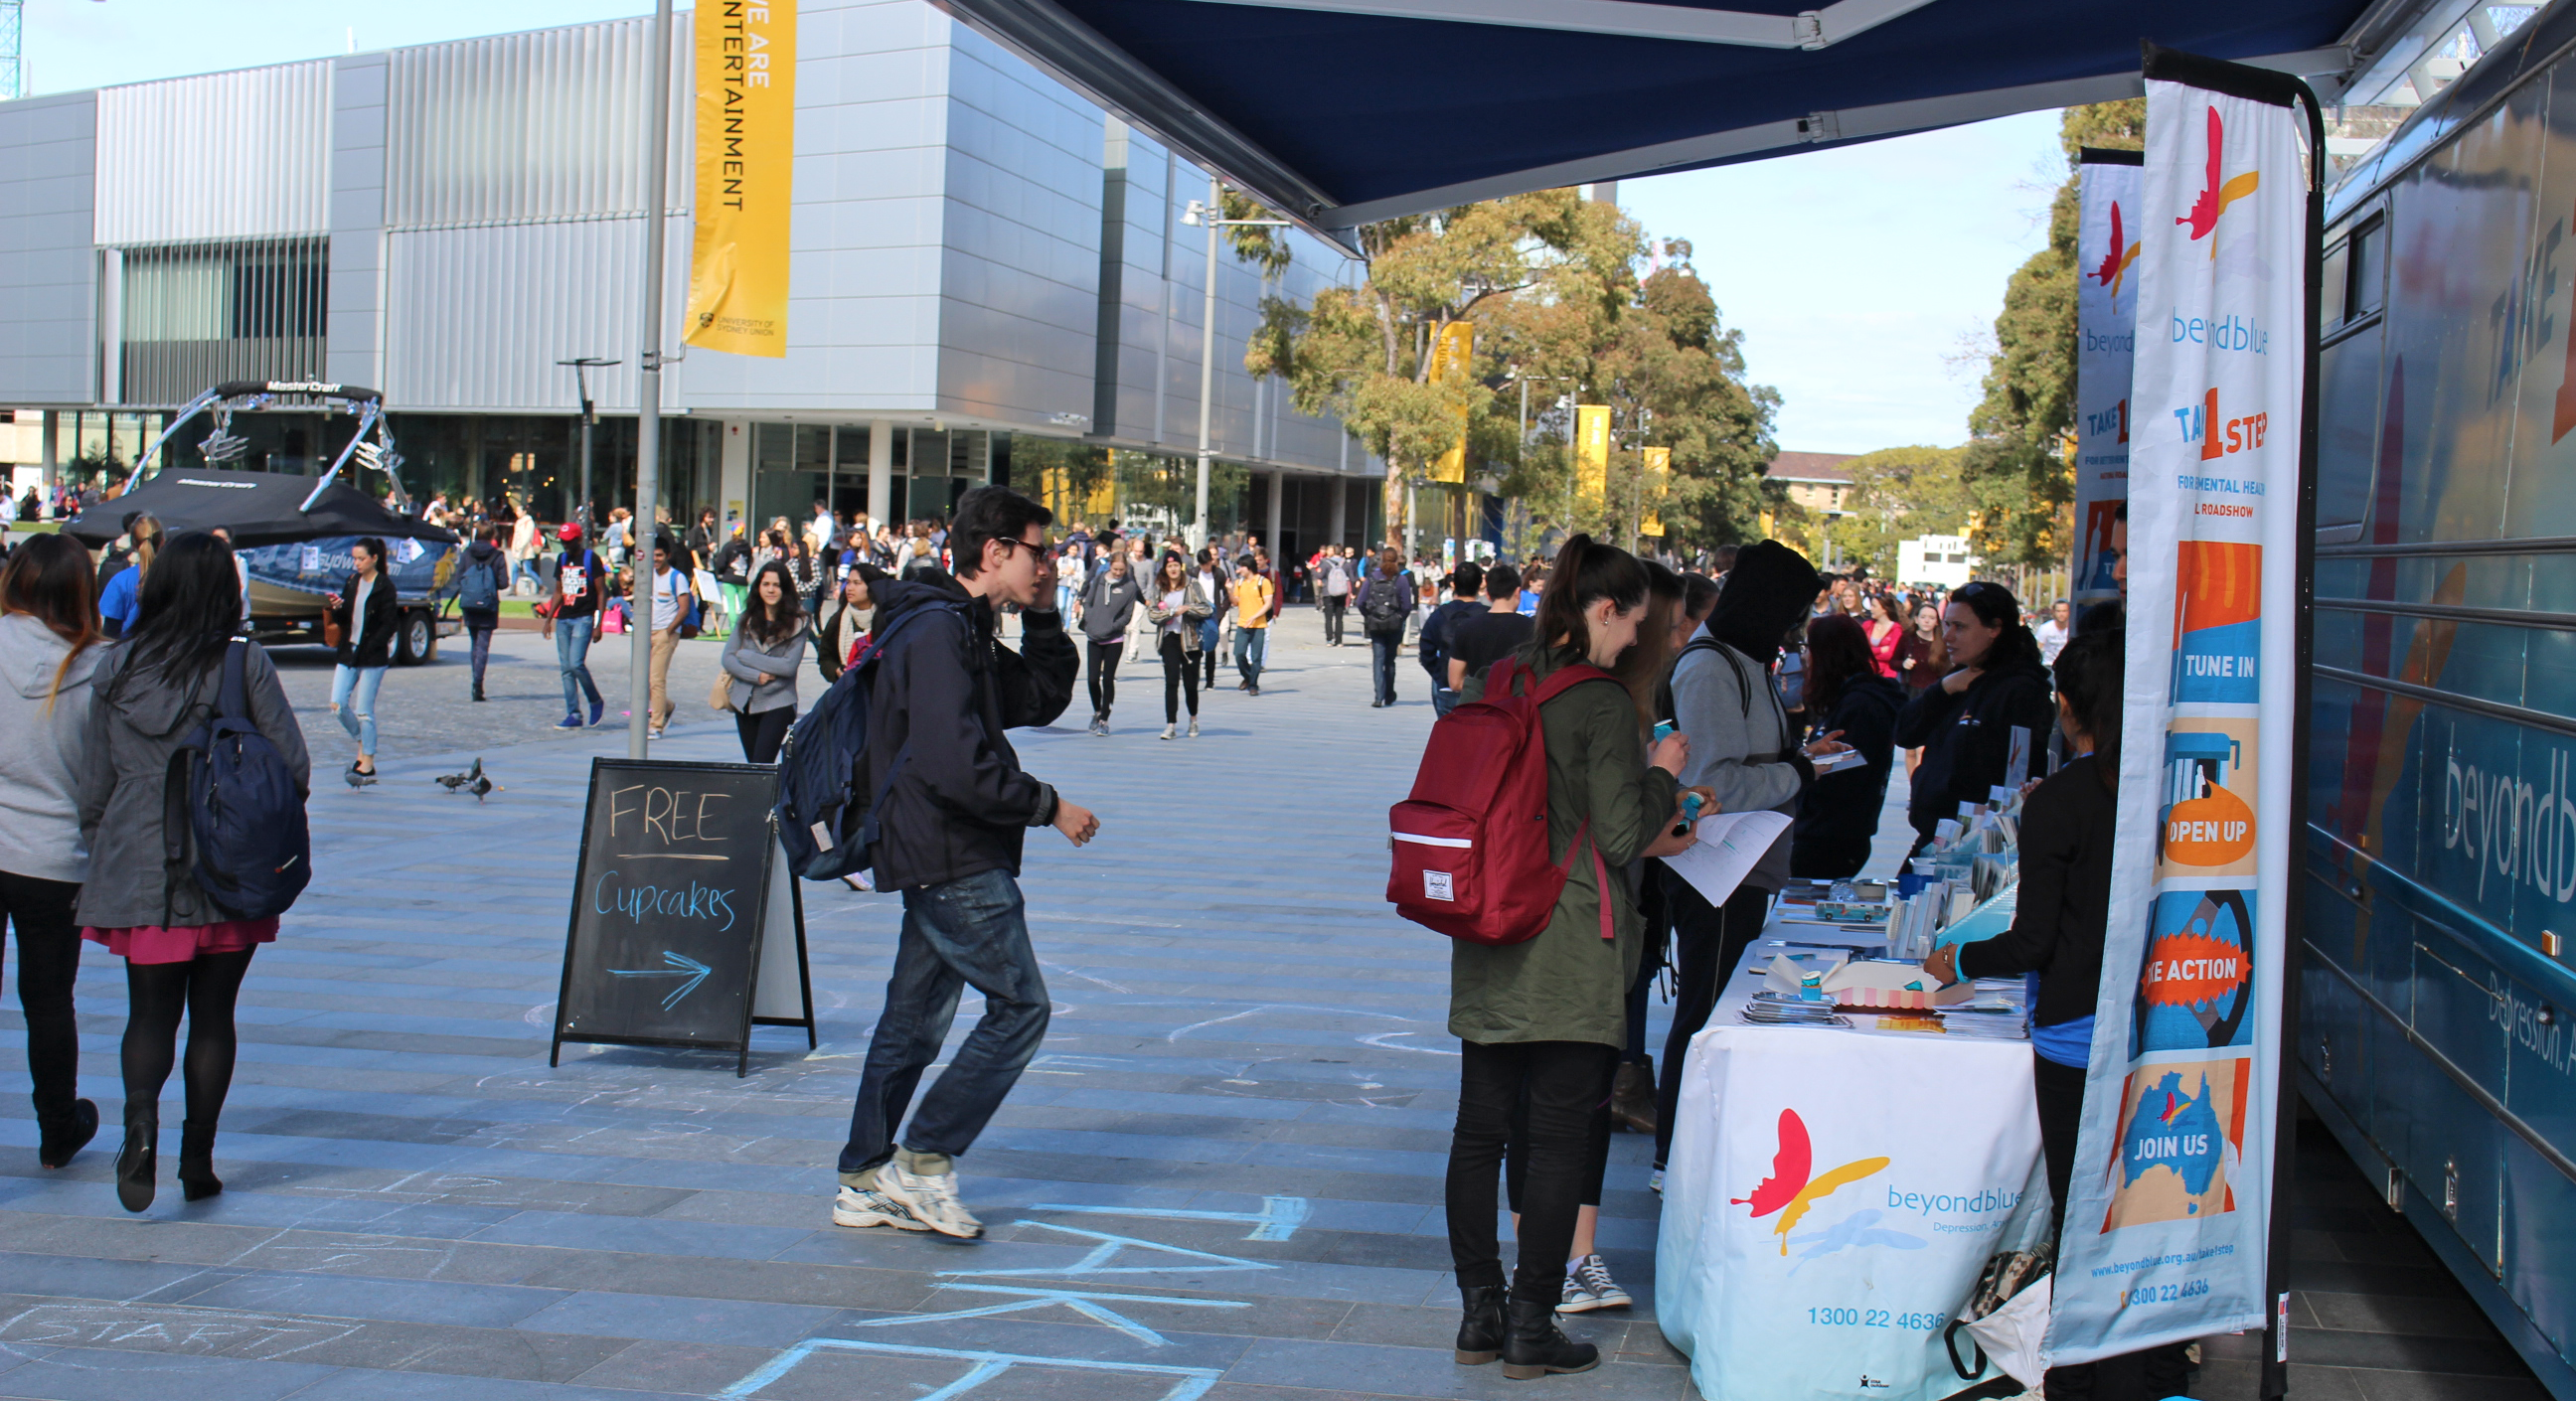 Hundreds of students stopped by the bus at The University of Sydney.